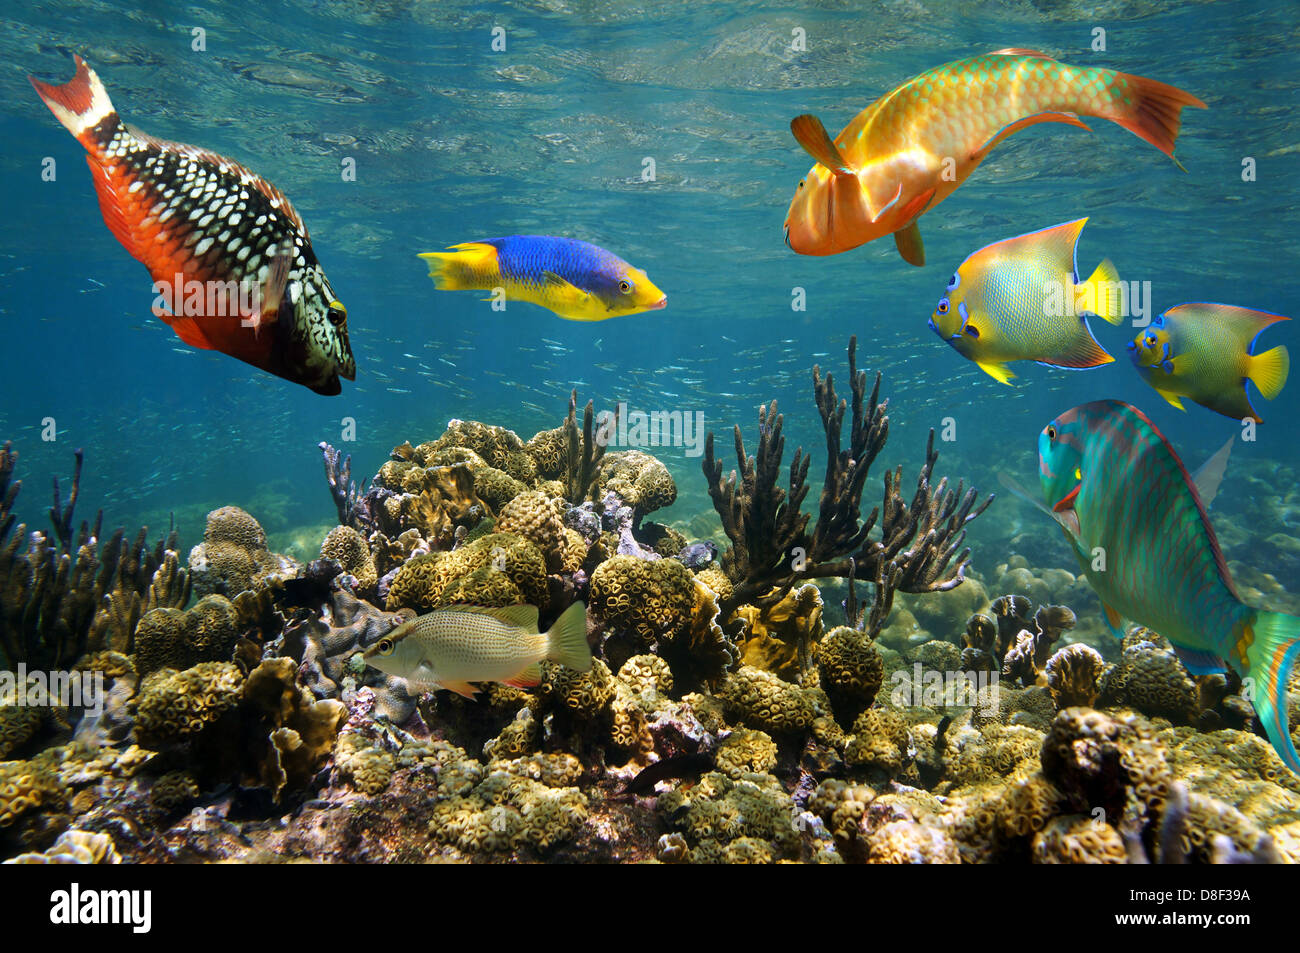 Healthy coral reef with colorful fish just under the water surface, Caribbean sea - Stock Image